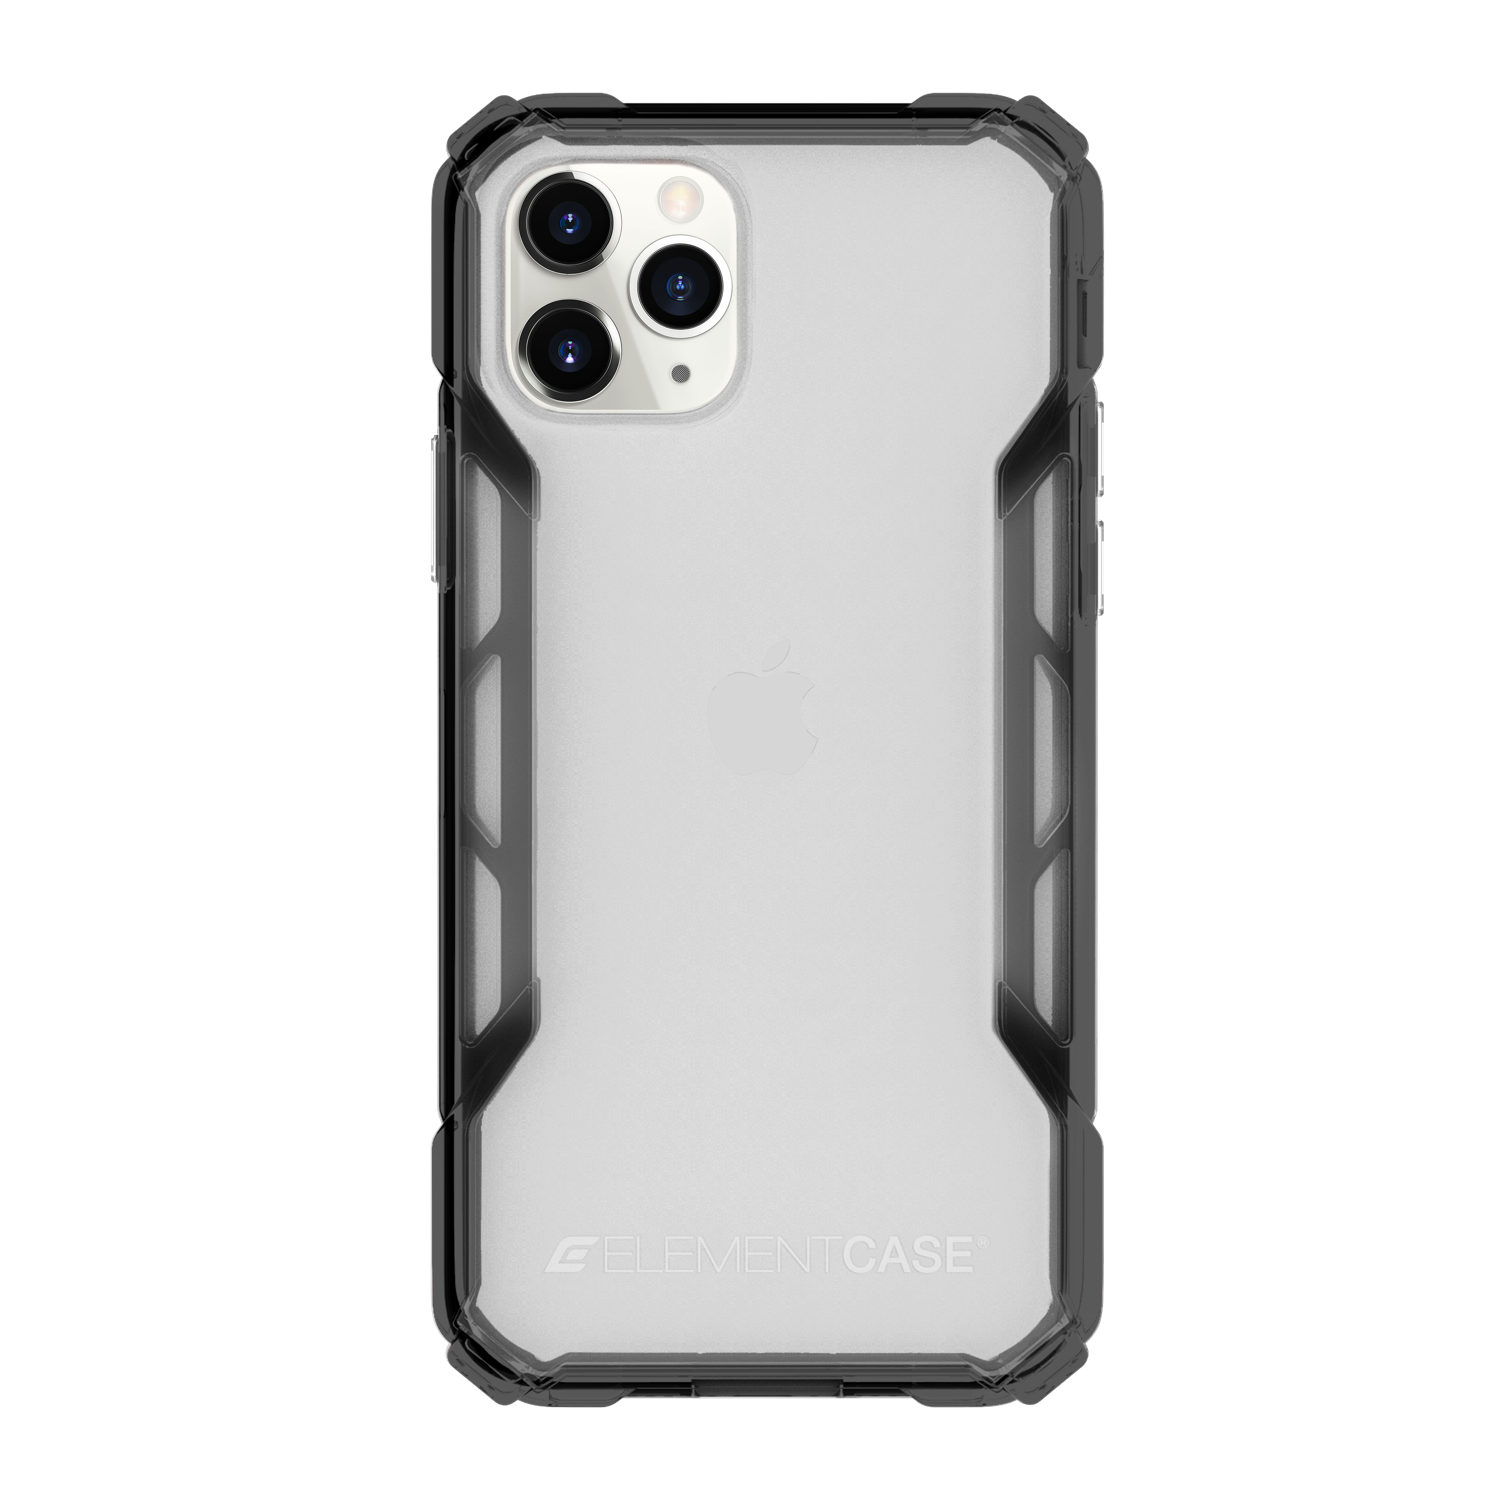 Element Case Rally Series Cover for iPhone 11 Pro